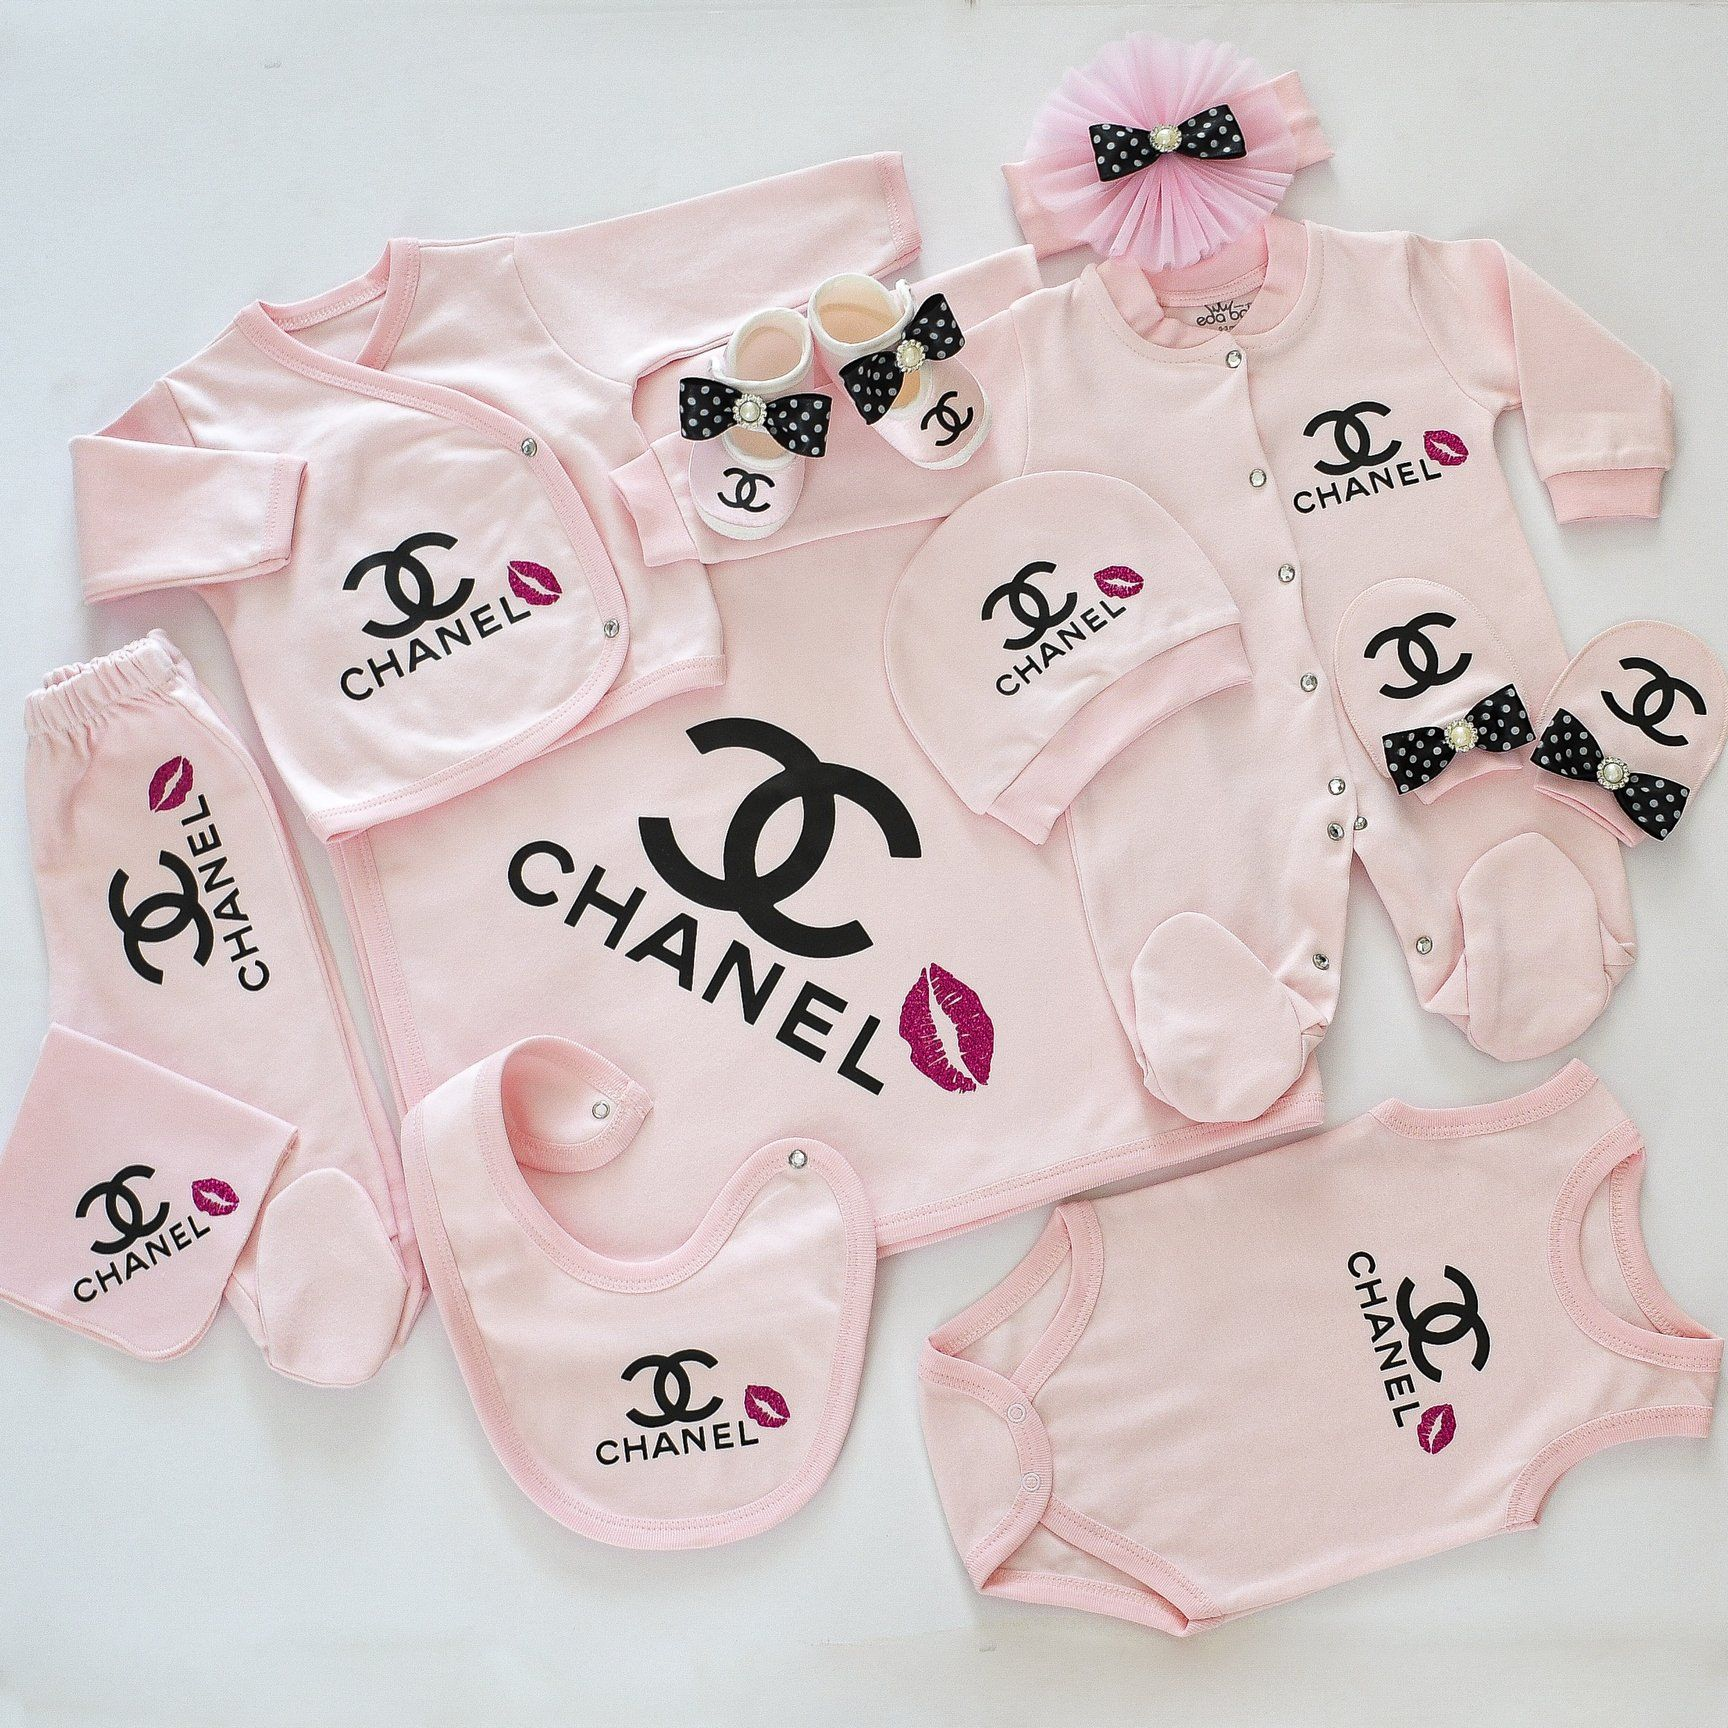 Introducing our best seller soft cotton baby set that can be